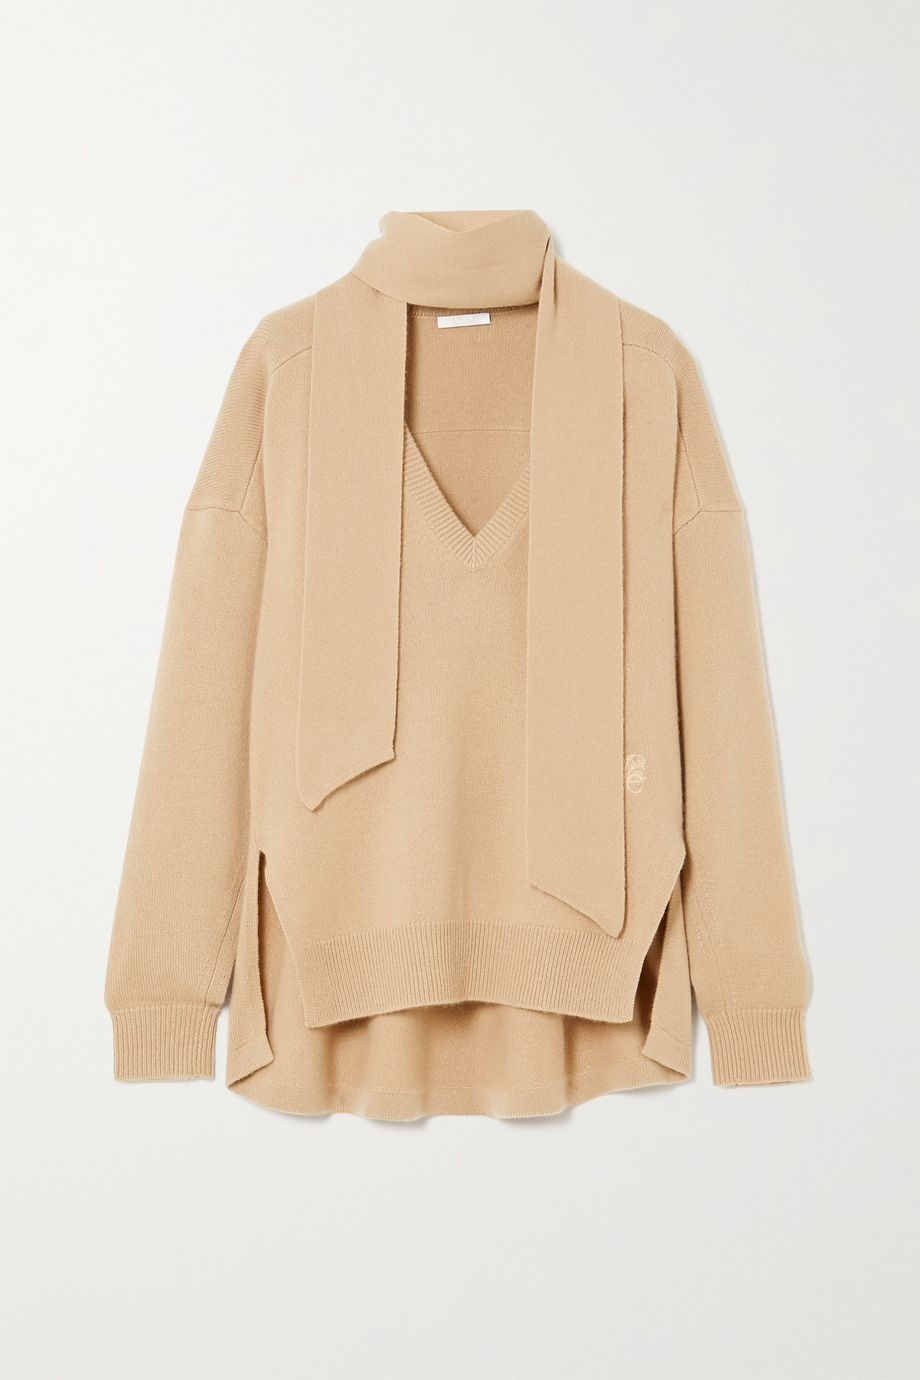 Chloé Tie-detailed embroidered cashmere sweater